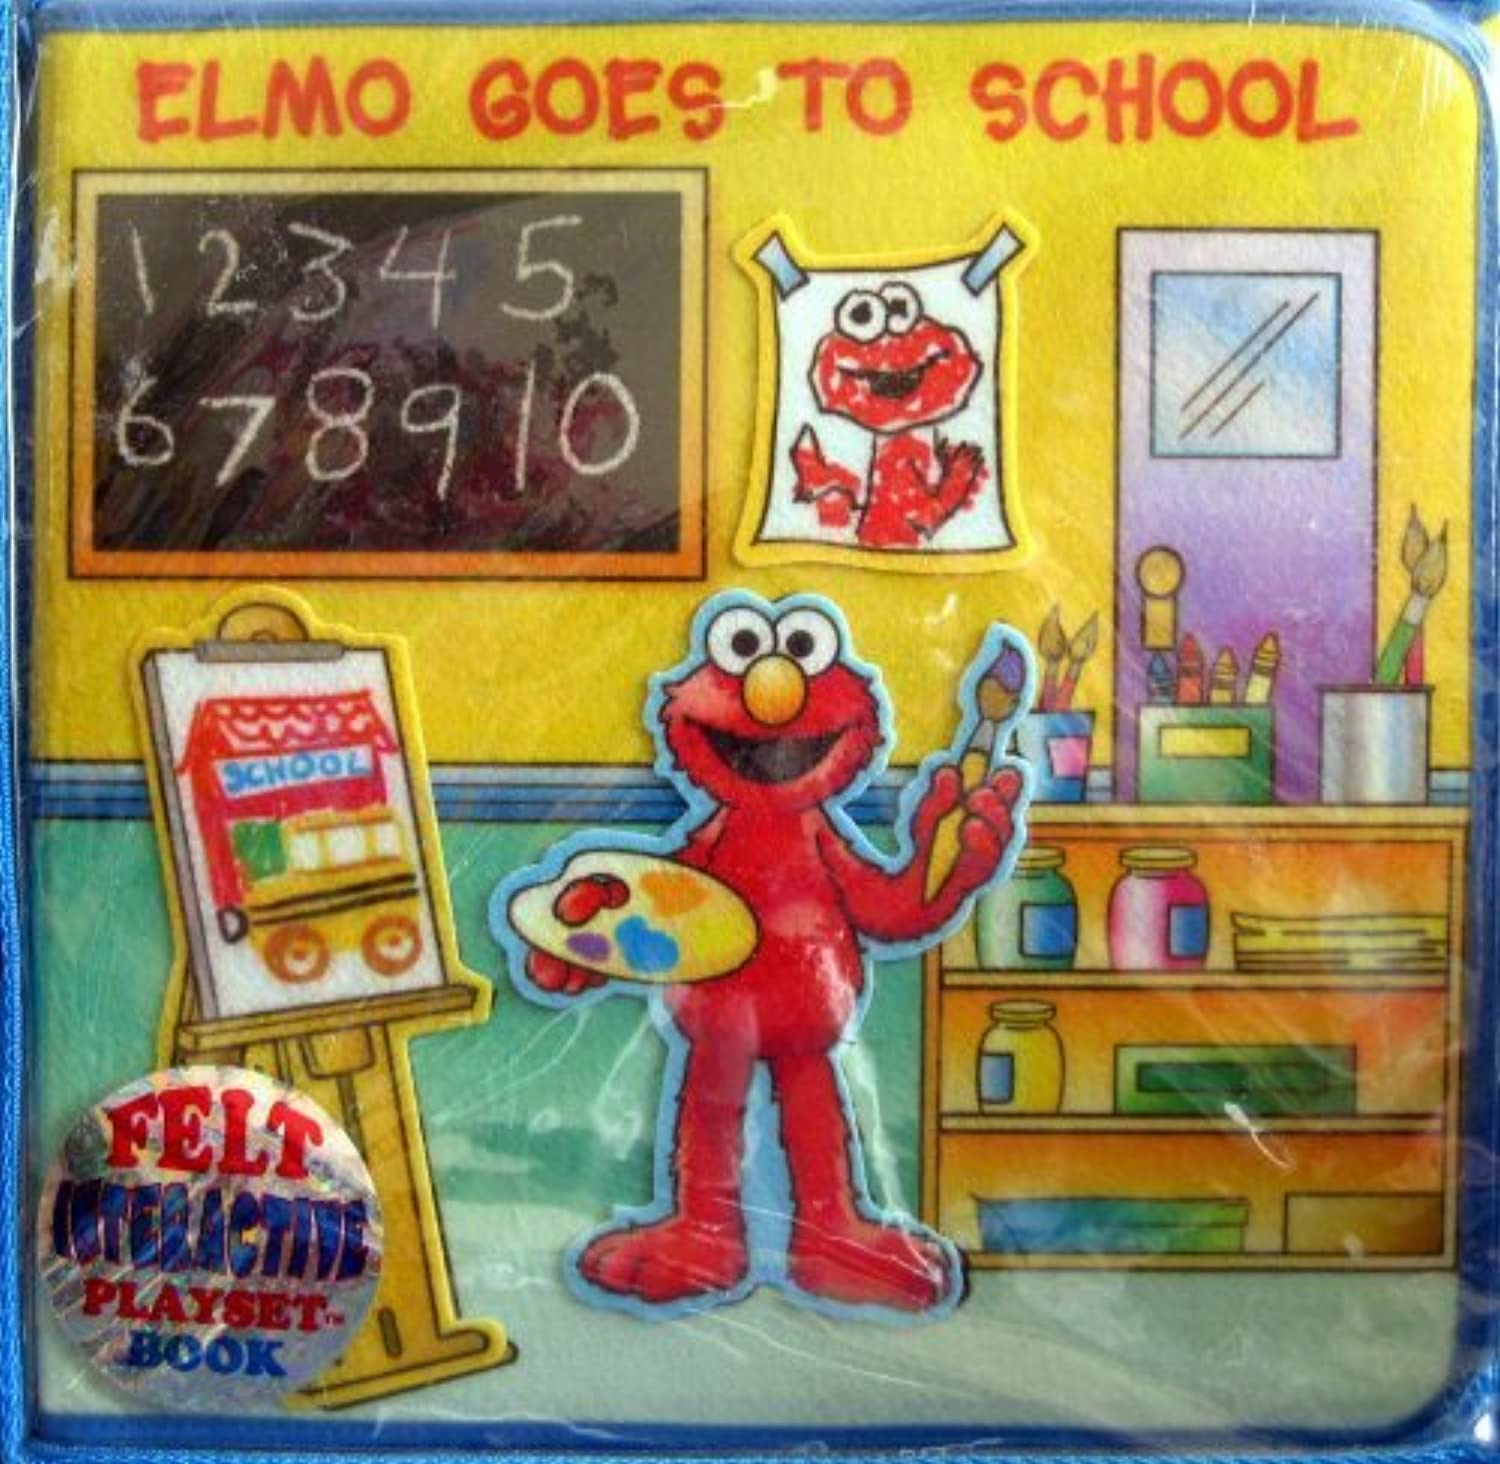 Soft Play Felt Playset Book  Elmo Goes to School